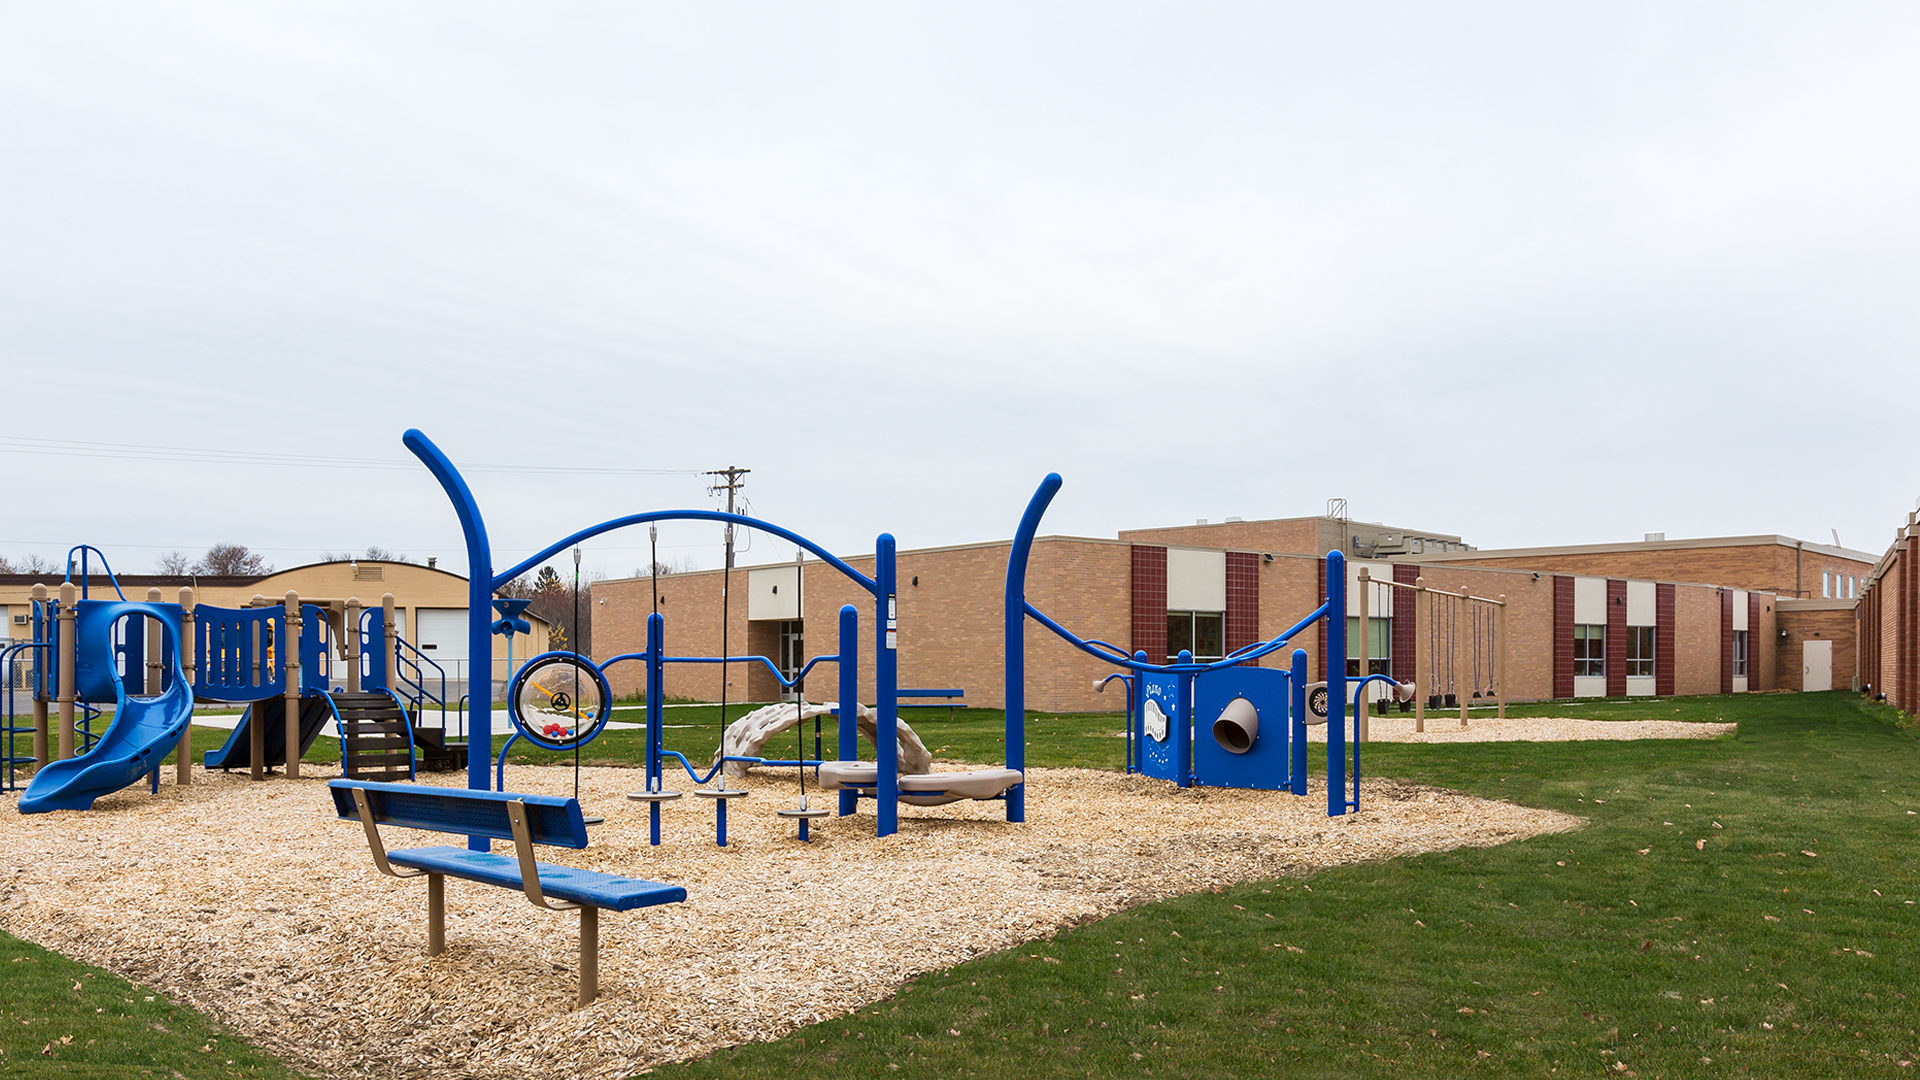 Clear Lake Elementary School Exterior View of the Play Ground Showing the Back of the Building